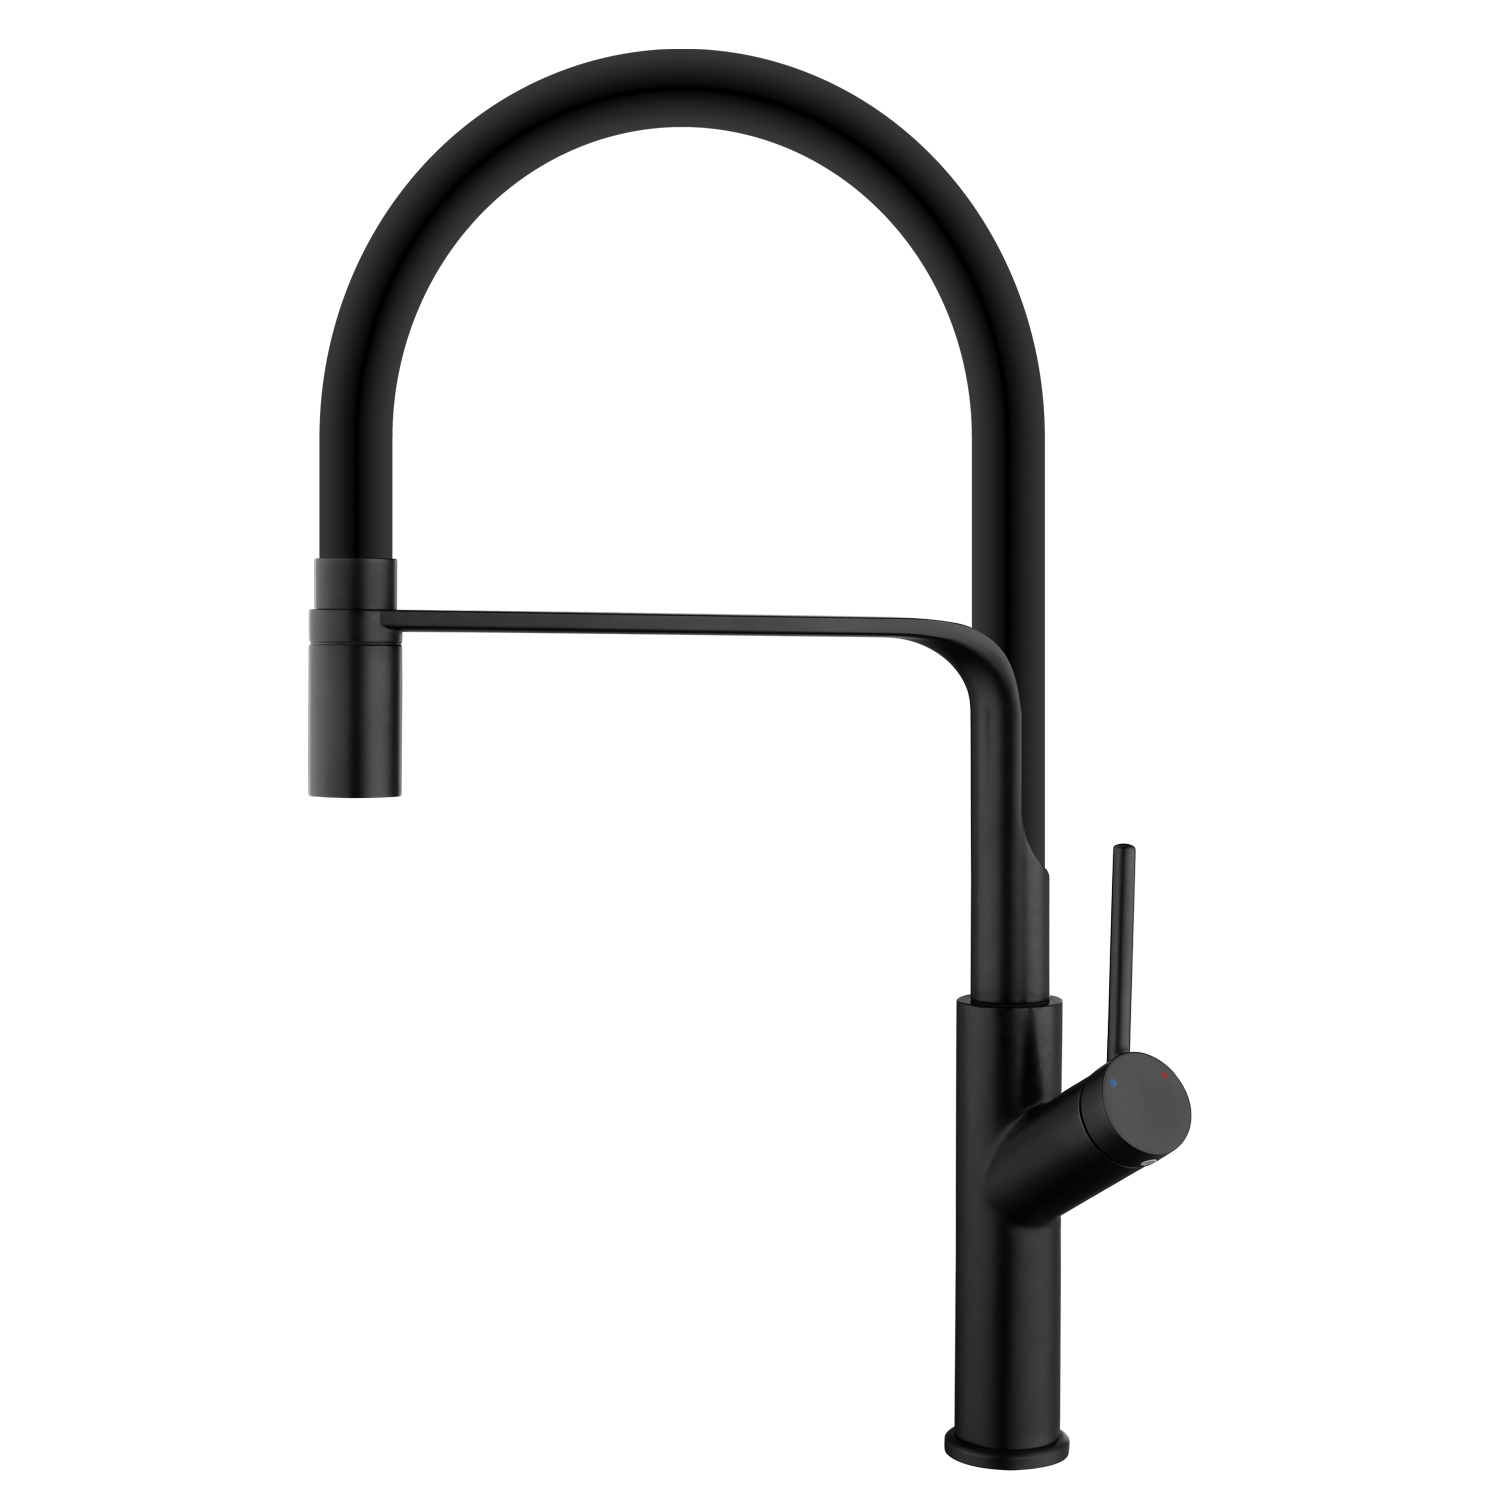 Permalink to Kitchen Faucet Silicone Hose High Arc Bathroom Basin Faucet Sink Faucets Ceramic Valve 360 Degree Swivel Kitchen Mixer Water Tap